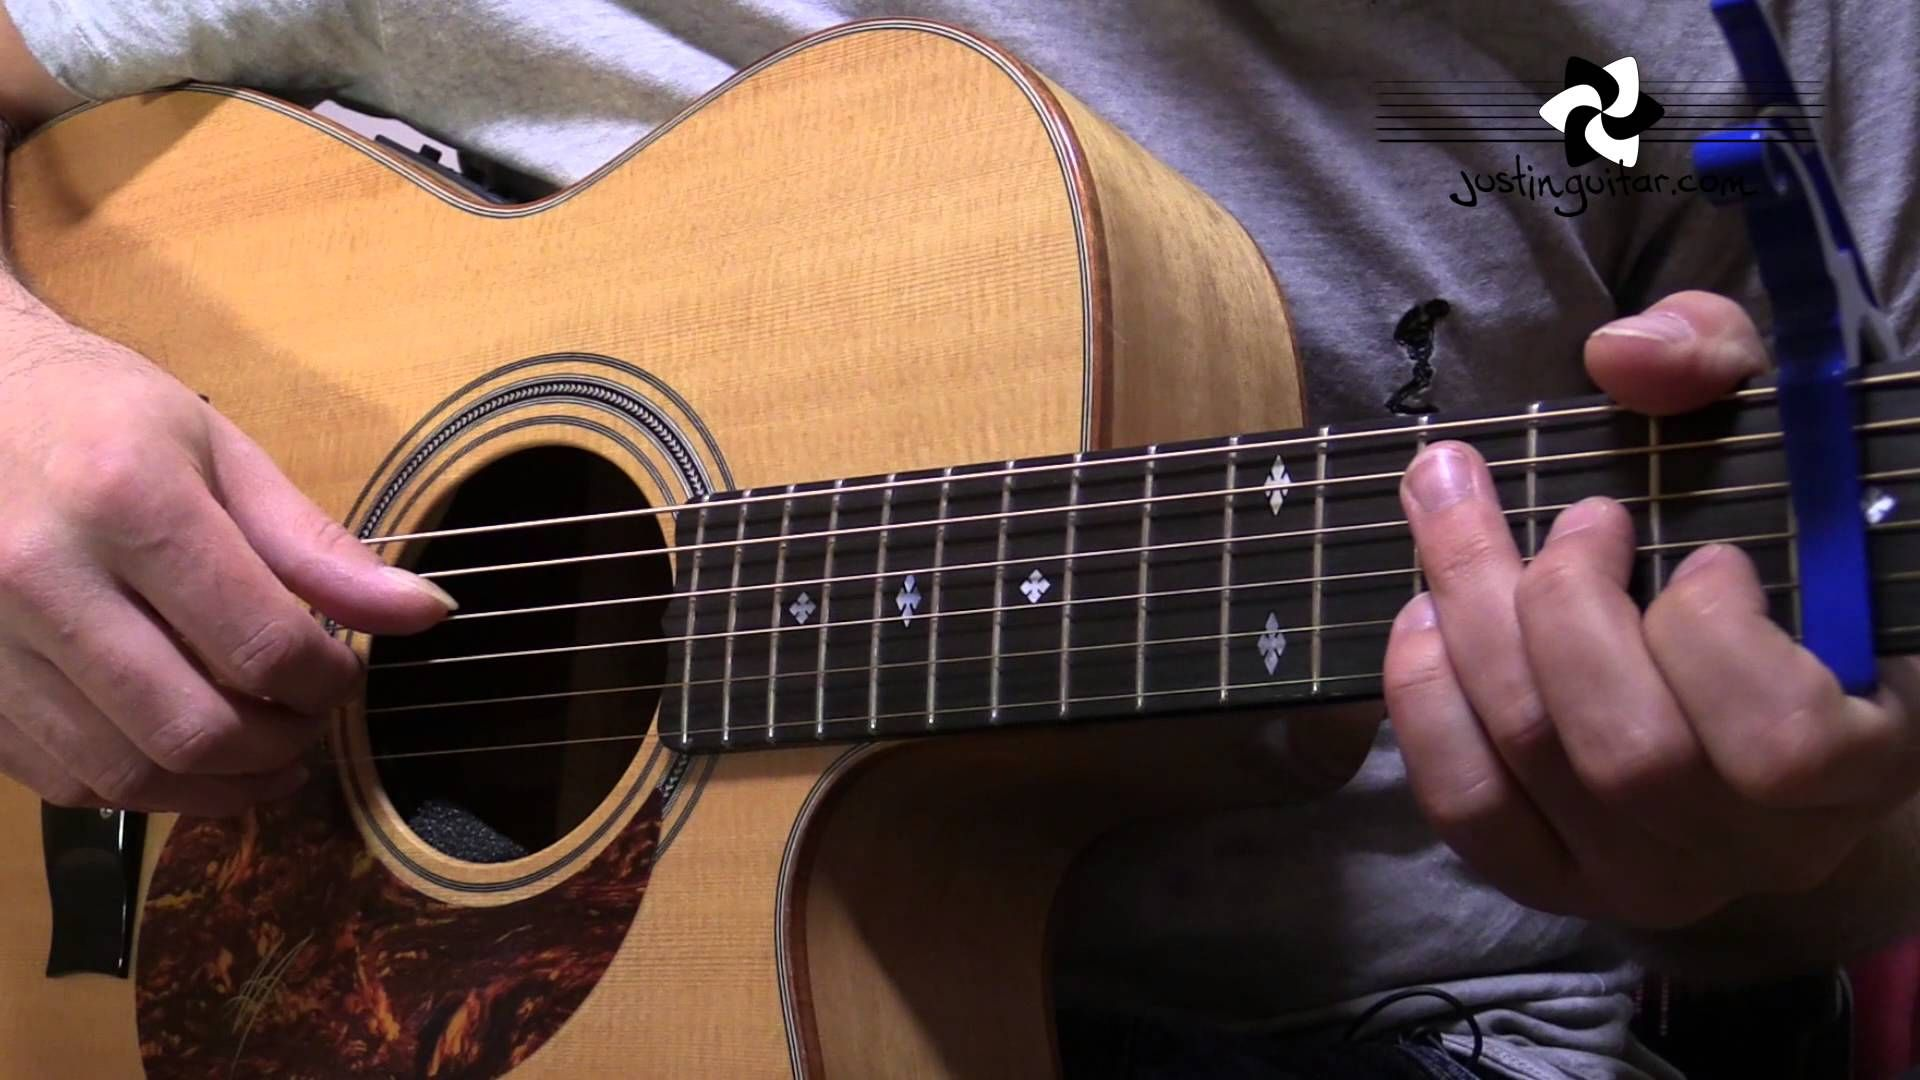 How to play Let Her Go by Passenger Guitar Lesson Acoustic Finger Style